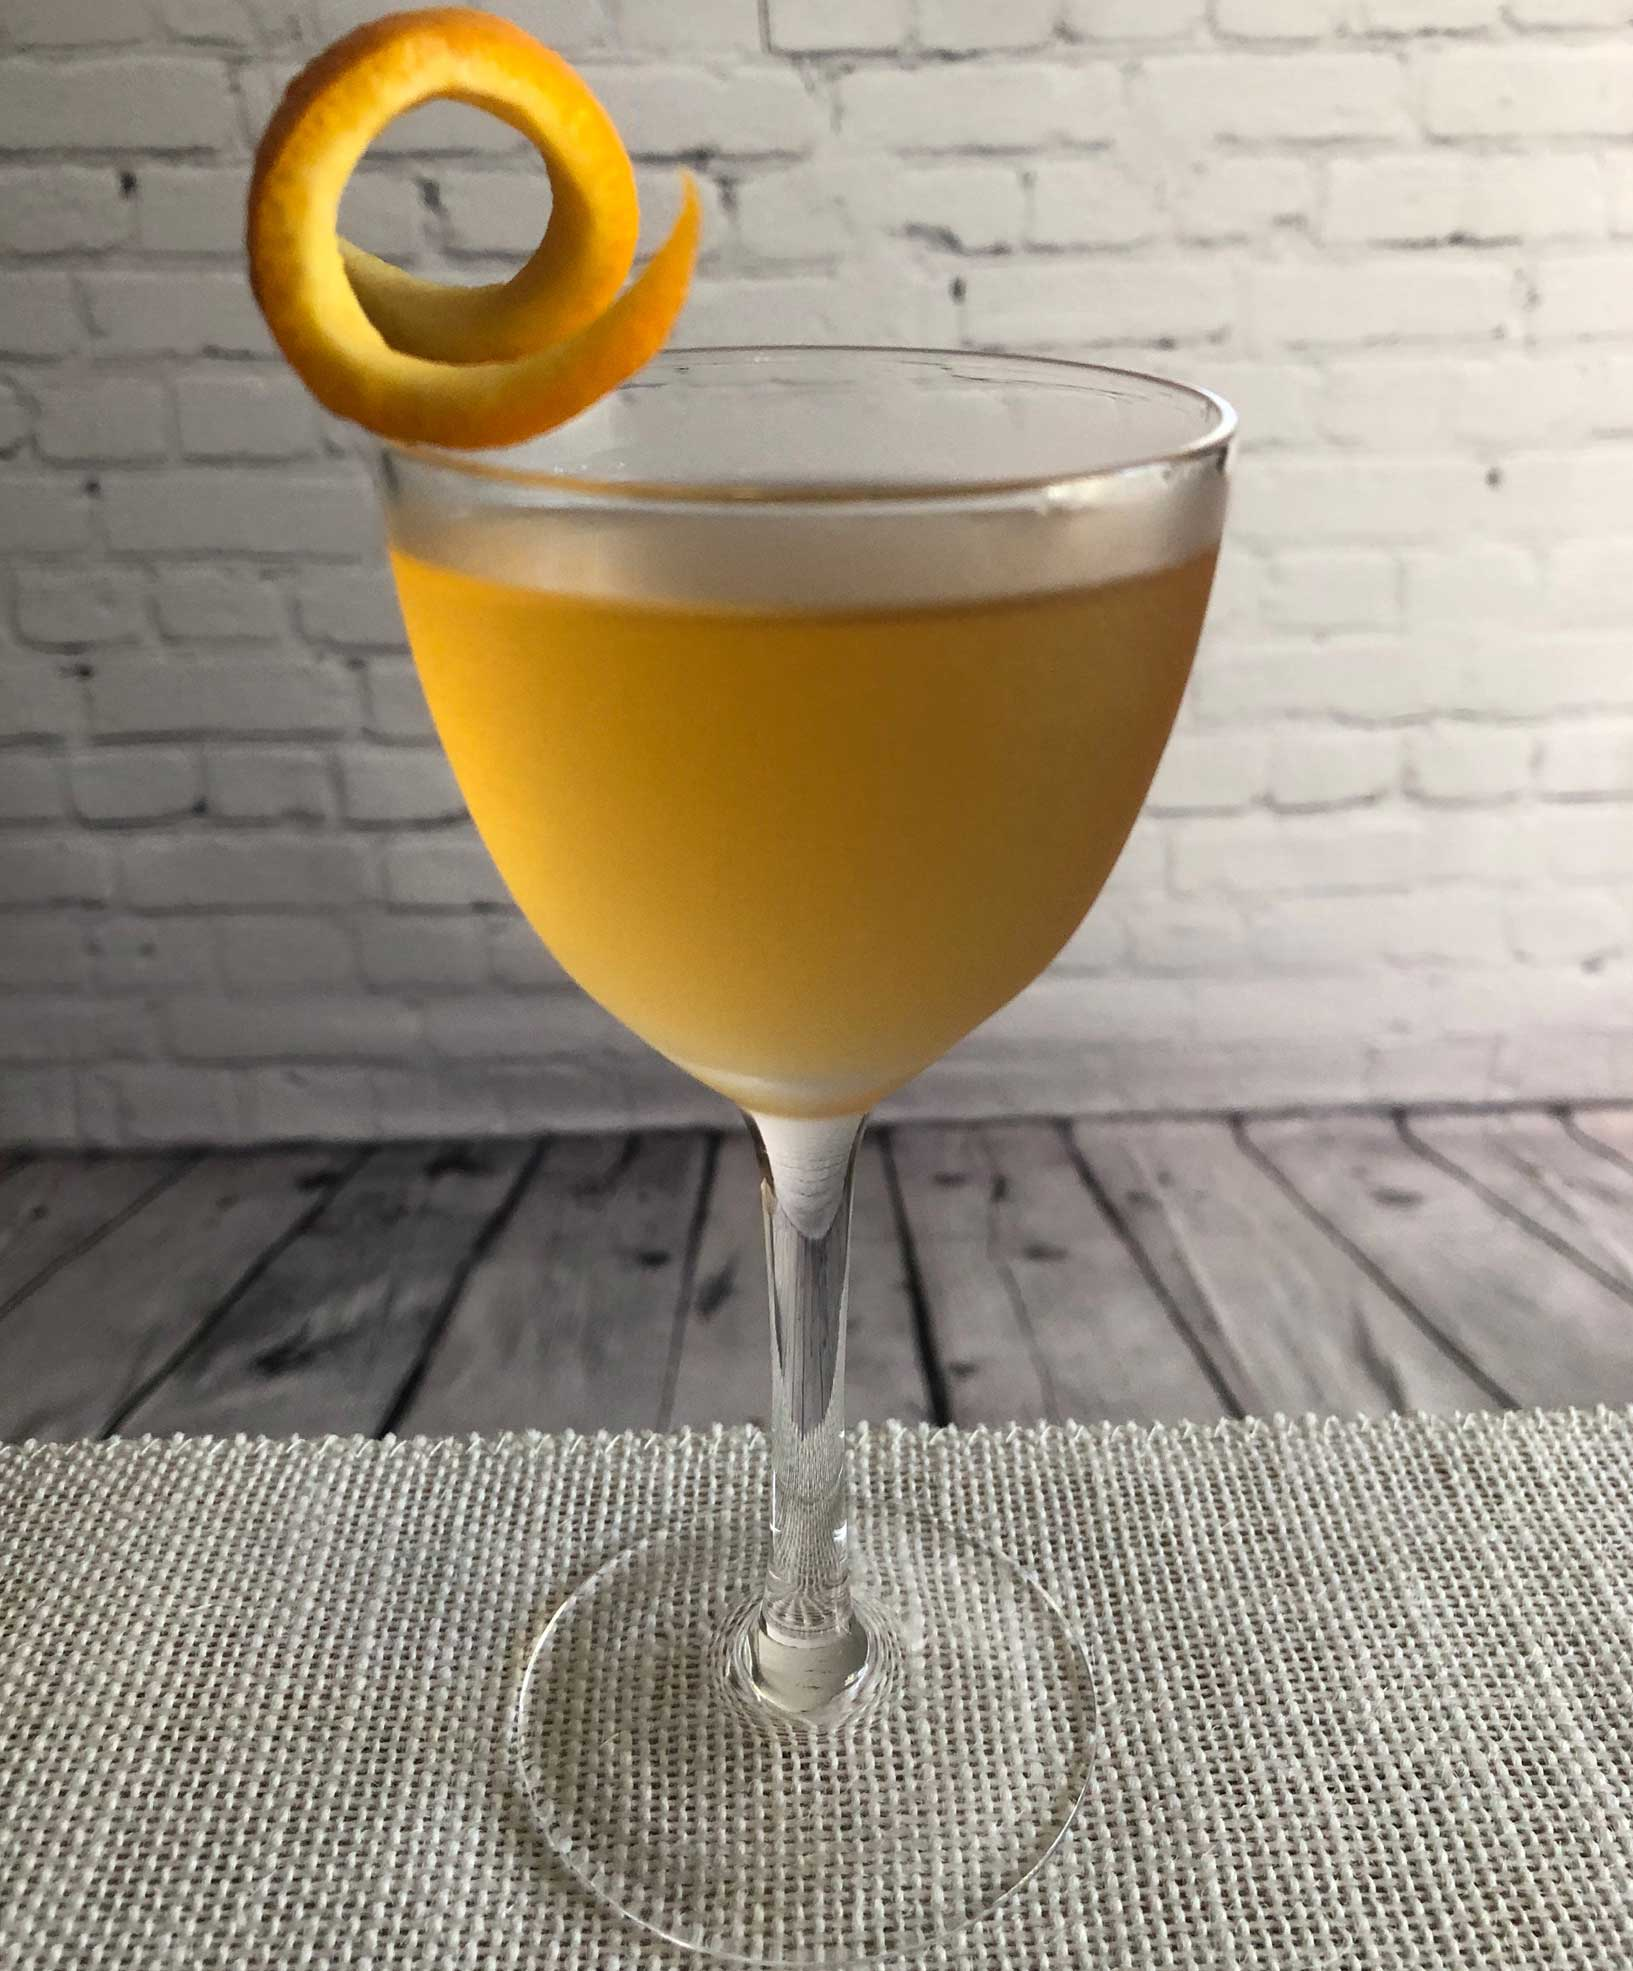 An example of the Brainstorm, the mixed drink (cocktail) featuring irish whiskey, Dolin Dry Vermouth de Chambéry, and Bénédictine; photo by Lee Edwards